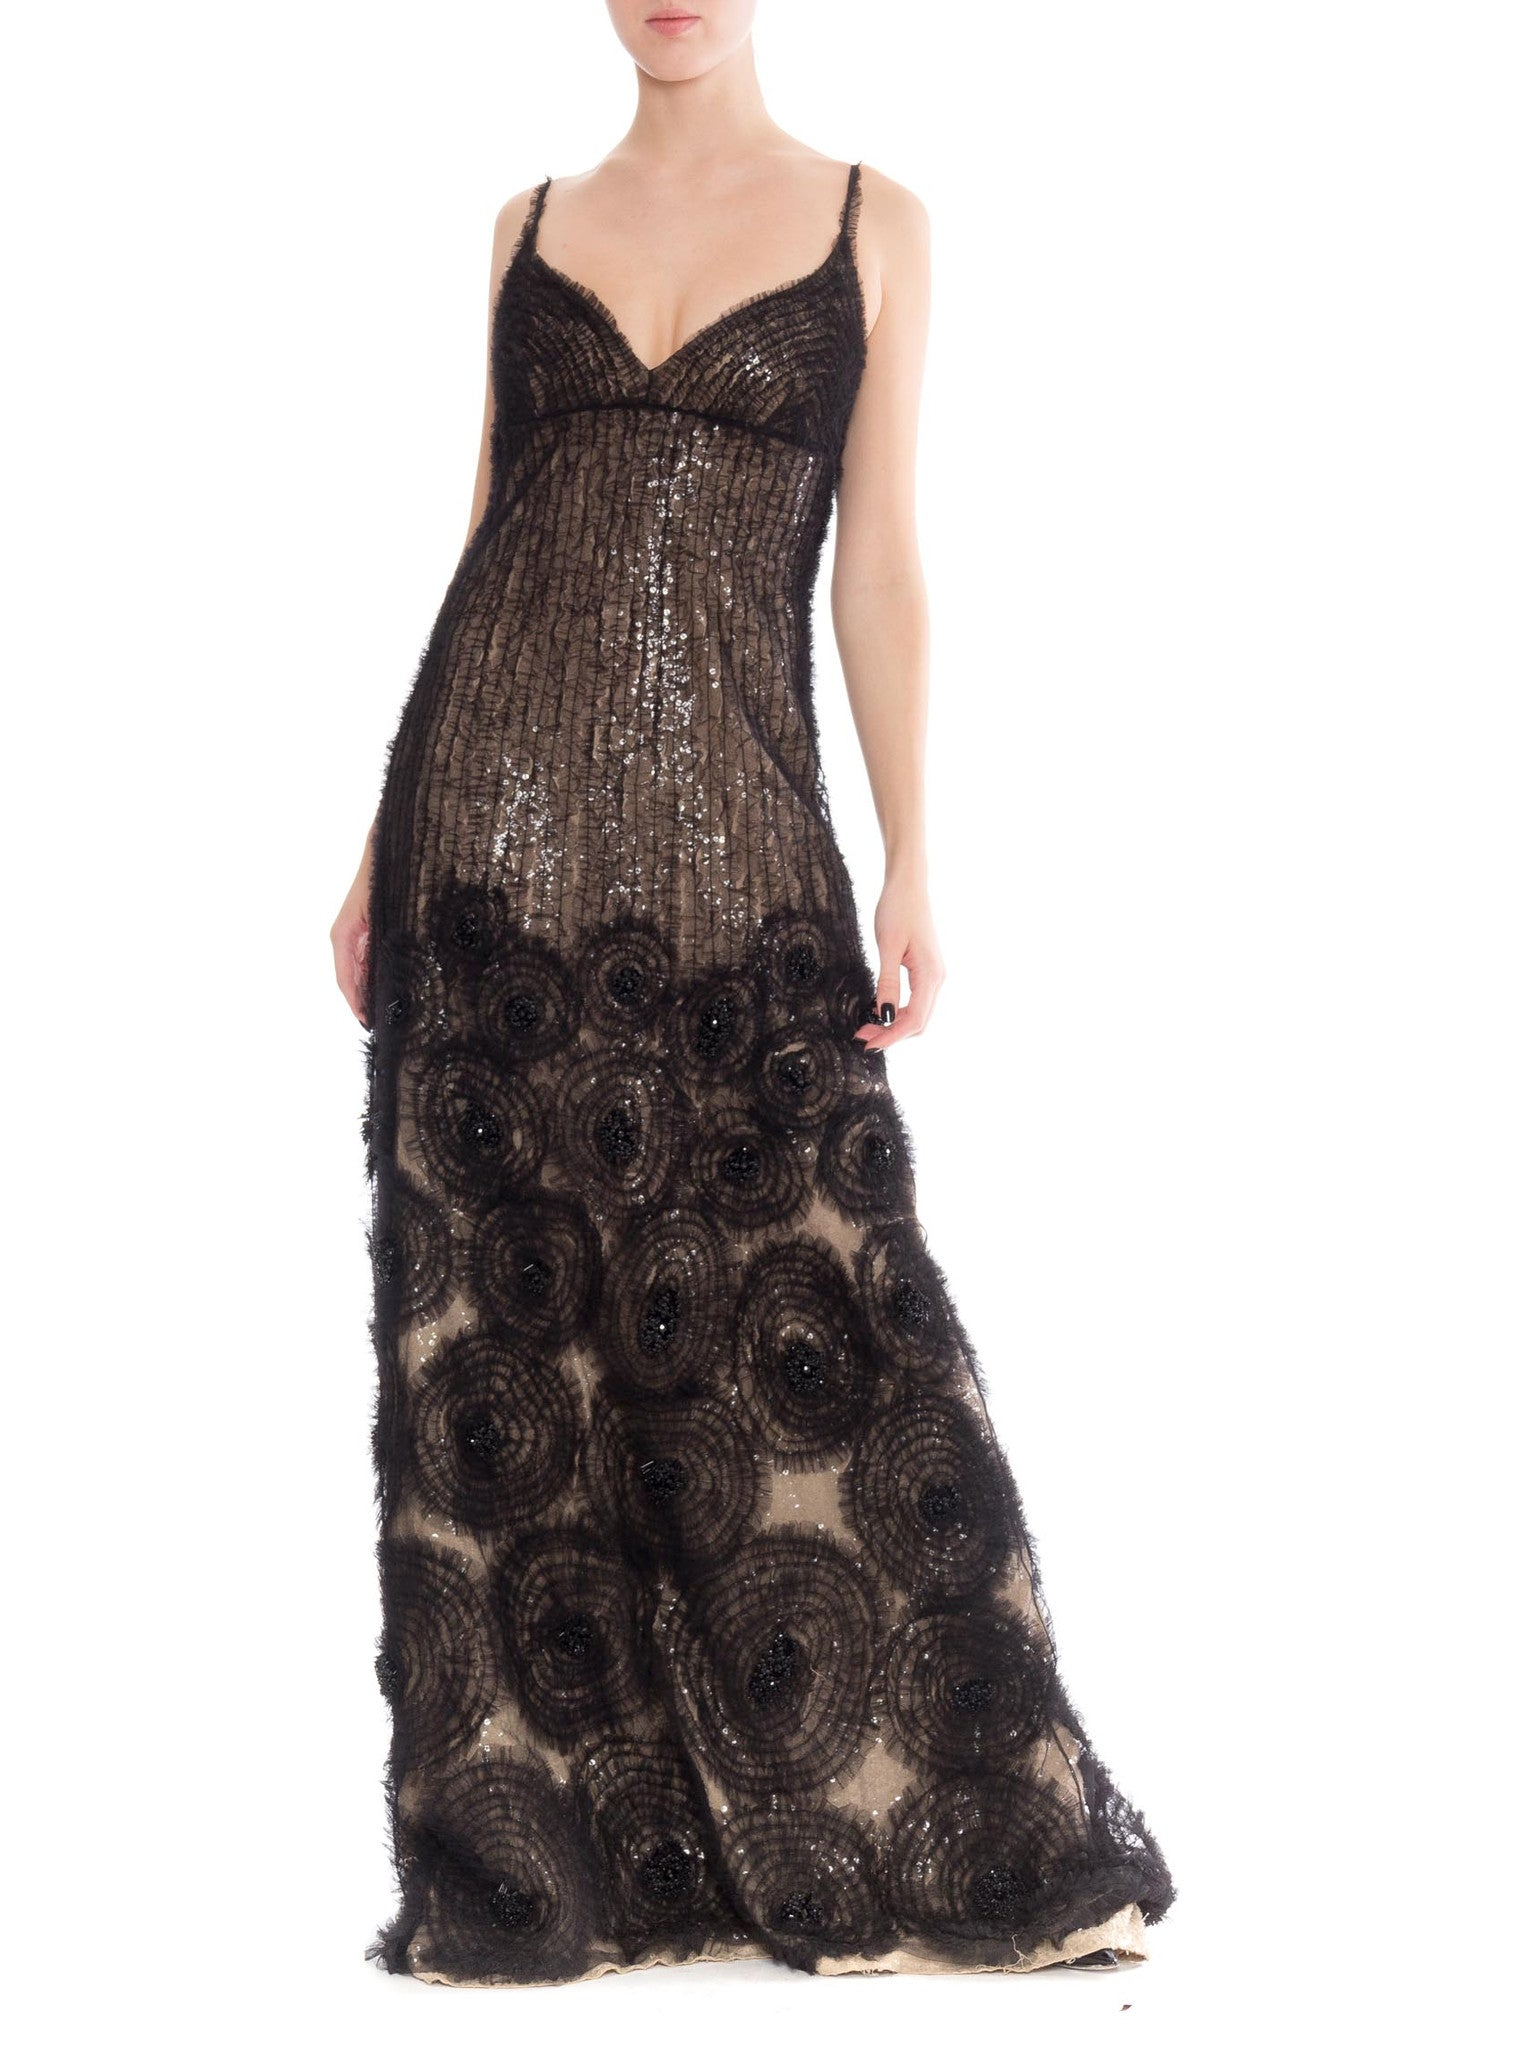 Sheer Illusion Naeem Khan Beaded Tulle Gown with Train – MORPHEW